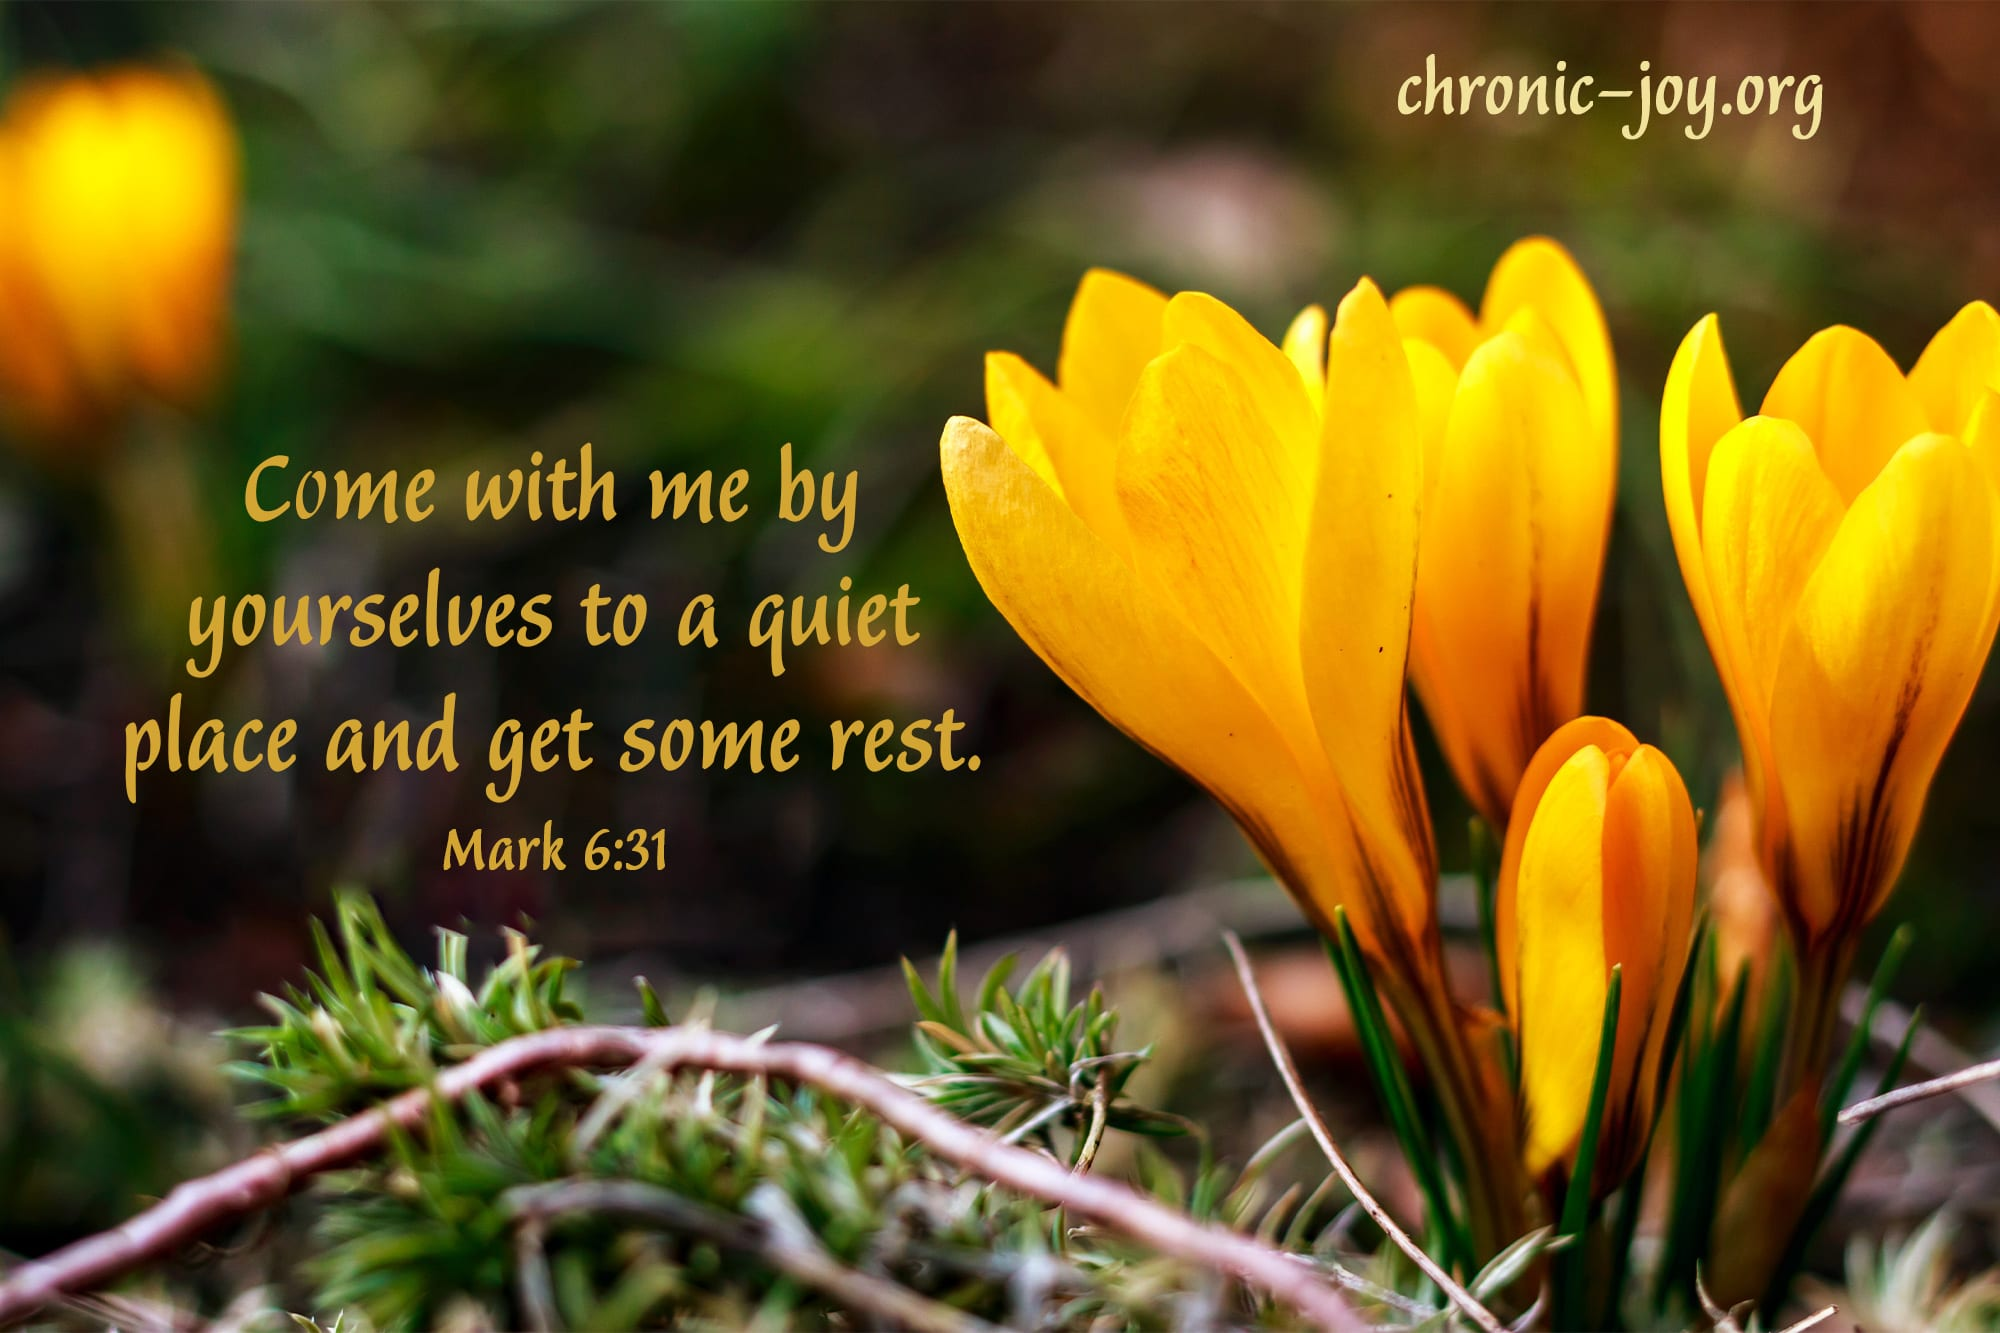 Simple Silence: A Place of Quiet Prayer